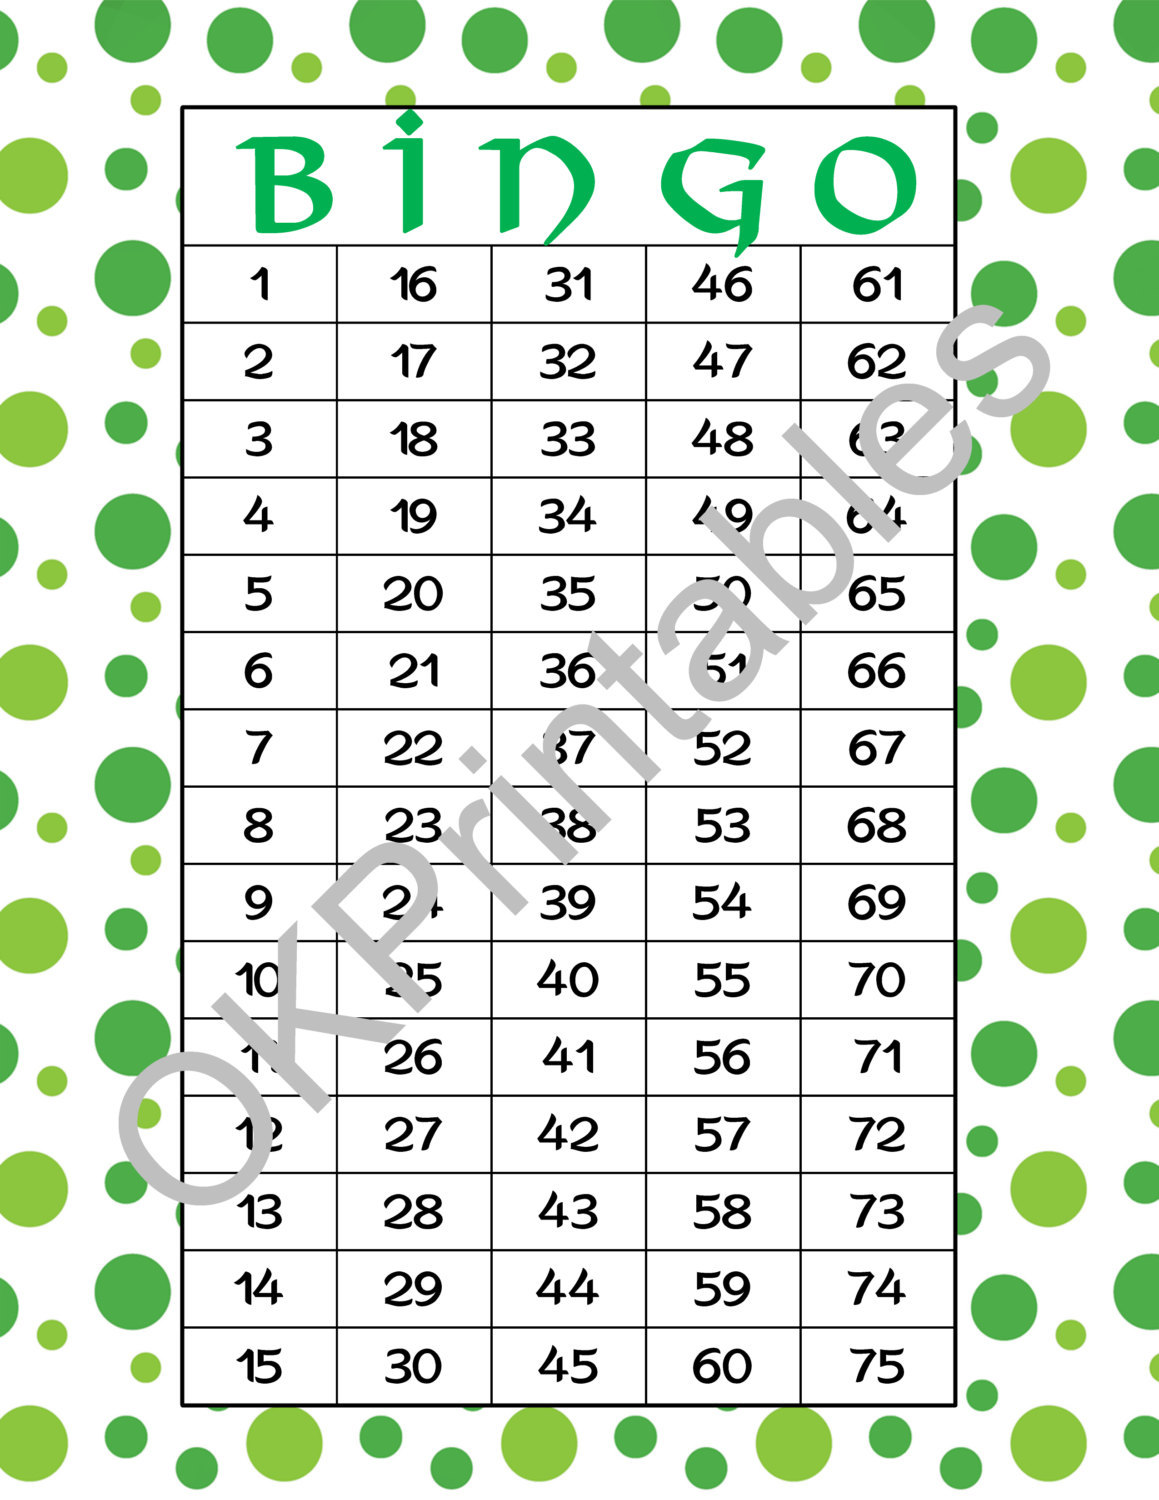 photograph relating to St Patrick's Day Bingo Printable named 30 Joyful St. Patricks Working day Bingo playing cards - and 50 identical goods